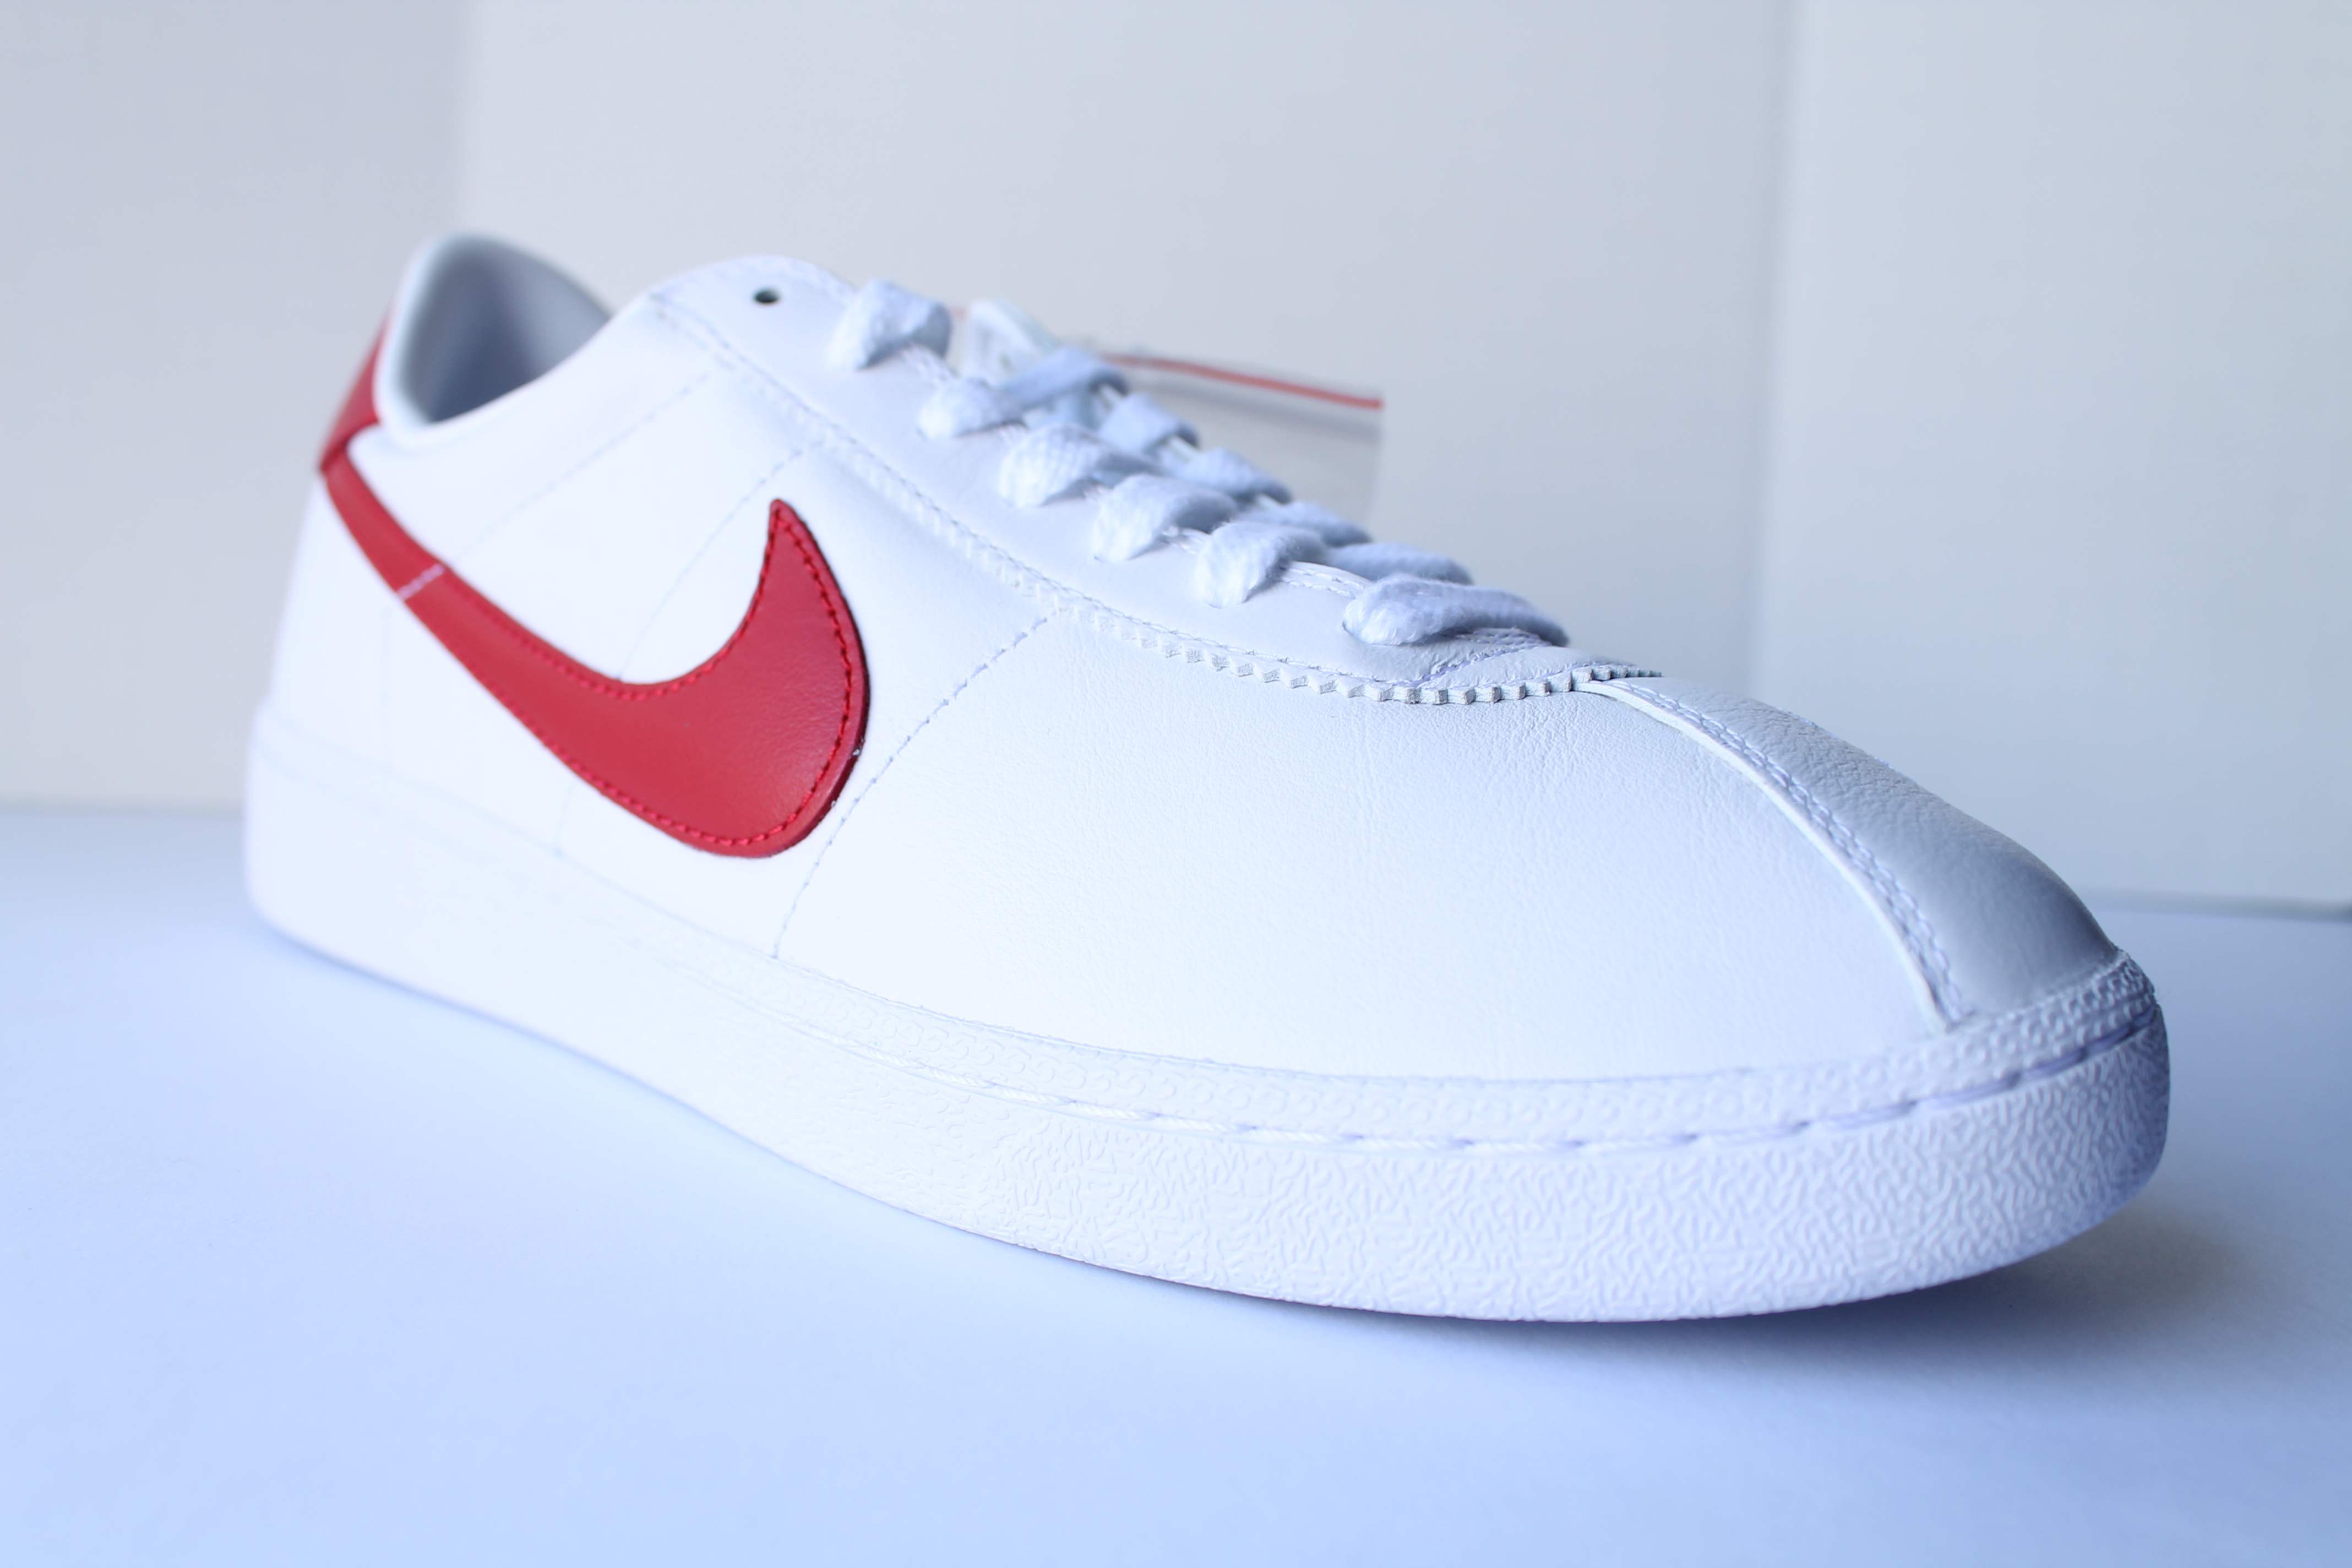 d77f5647d0065c ... Nike Bruin Leather Marty McFly Back to the Future 1985 ...